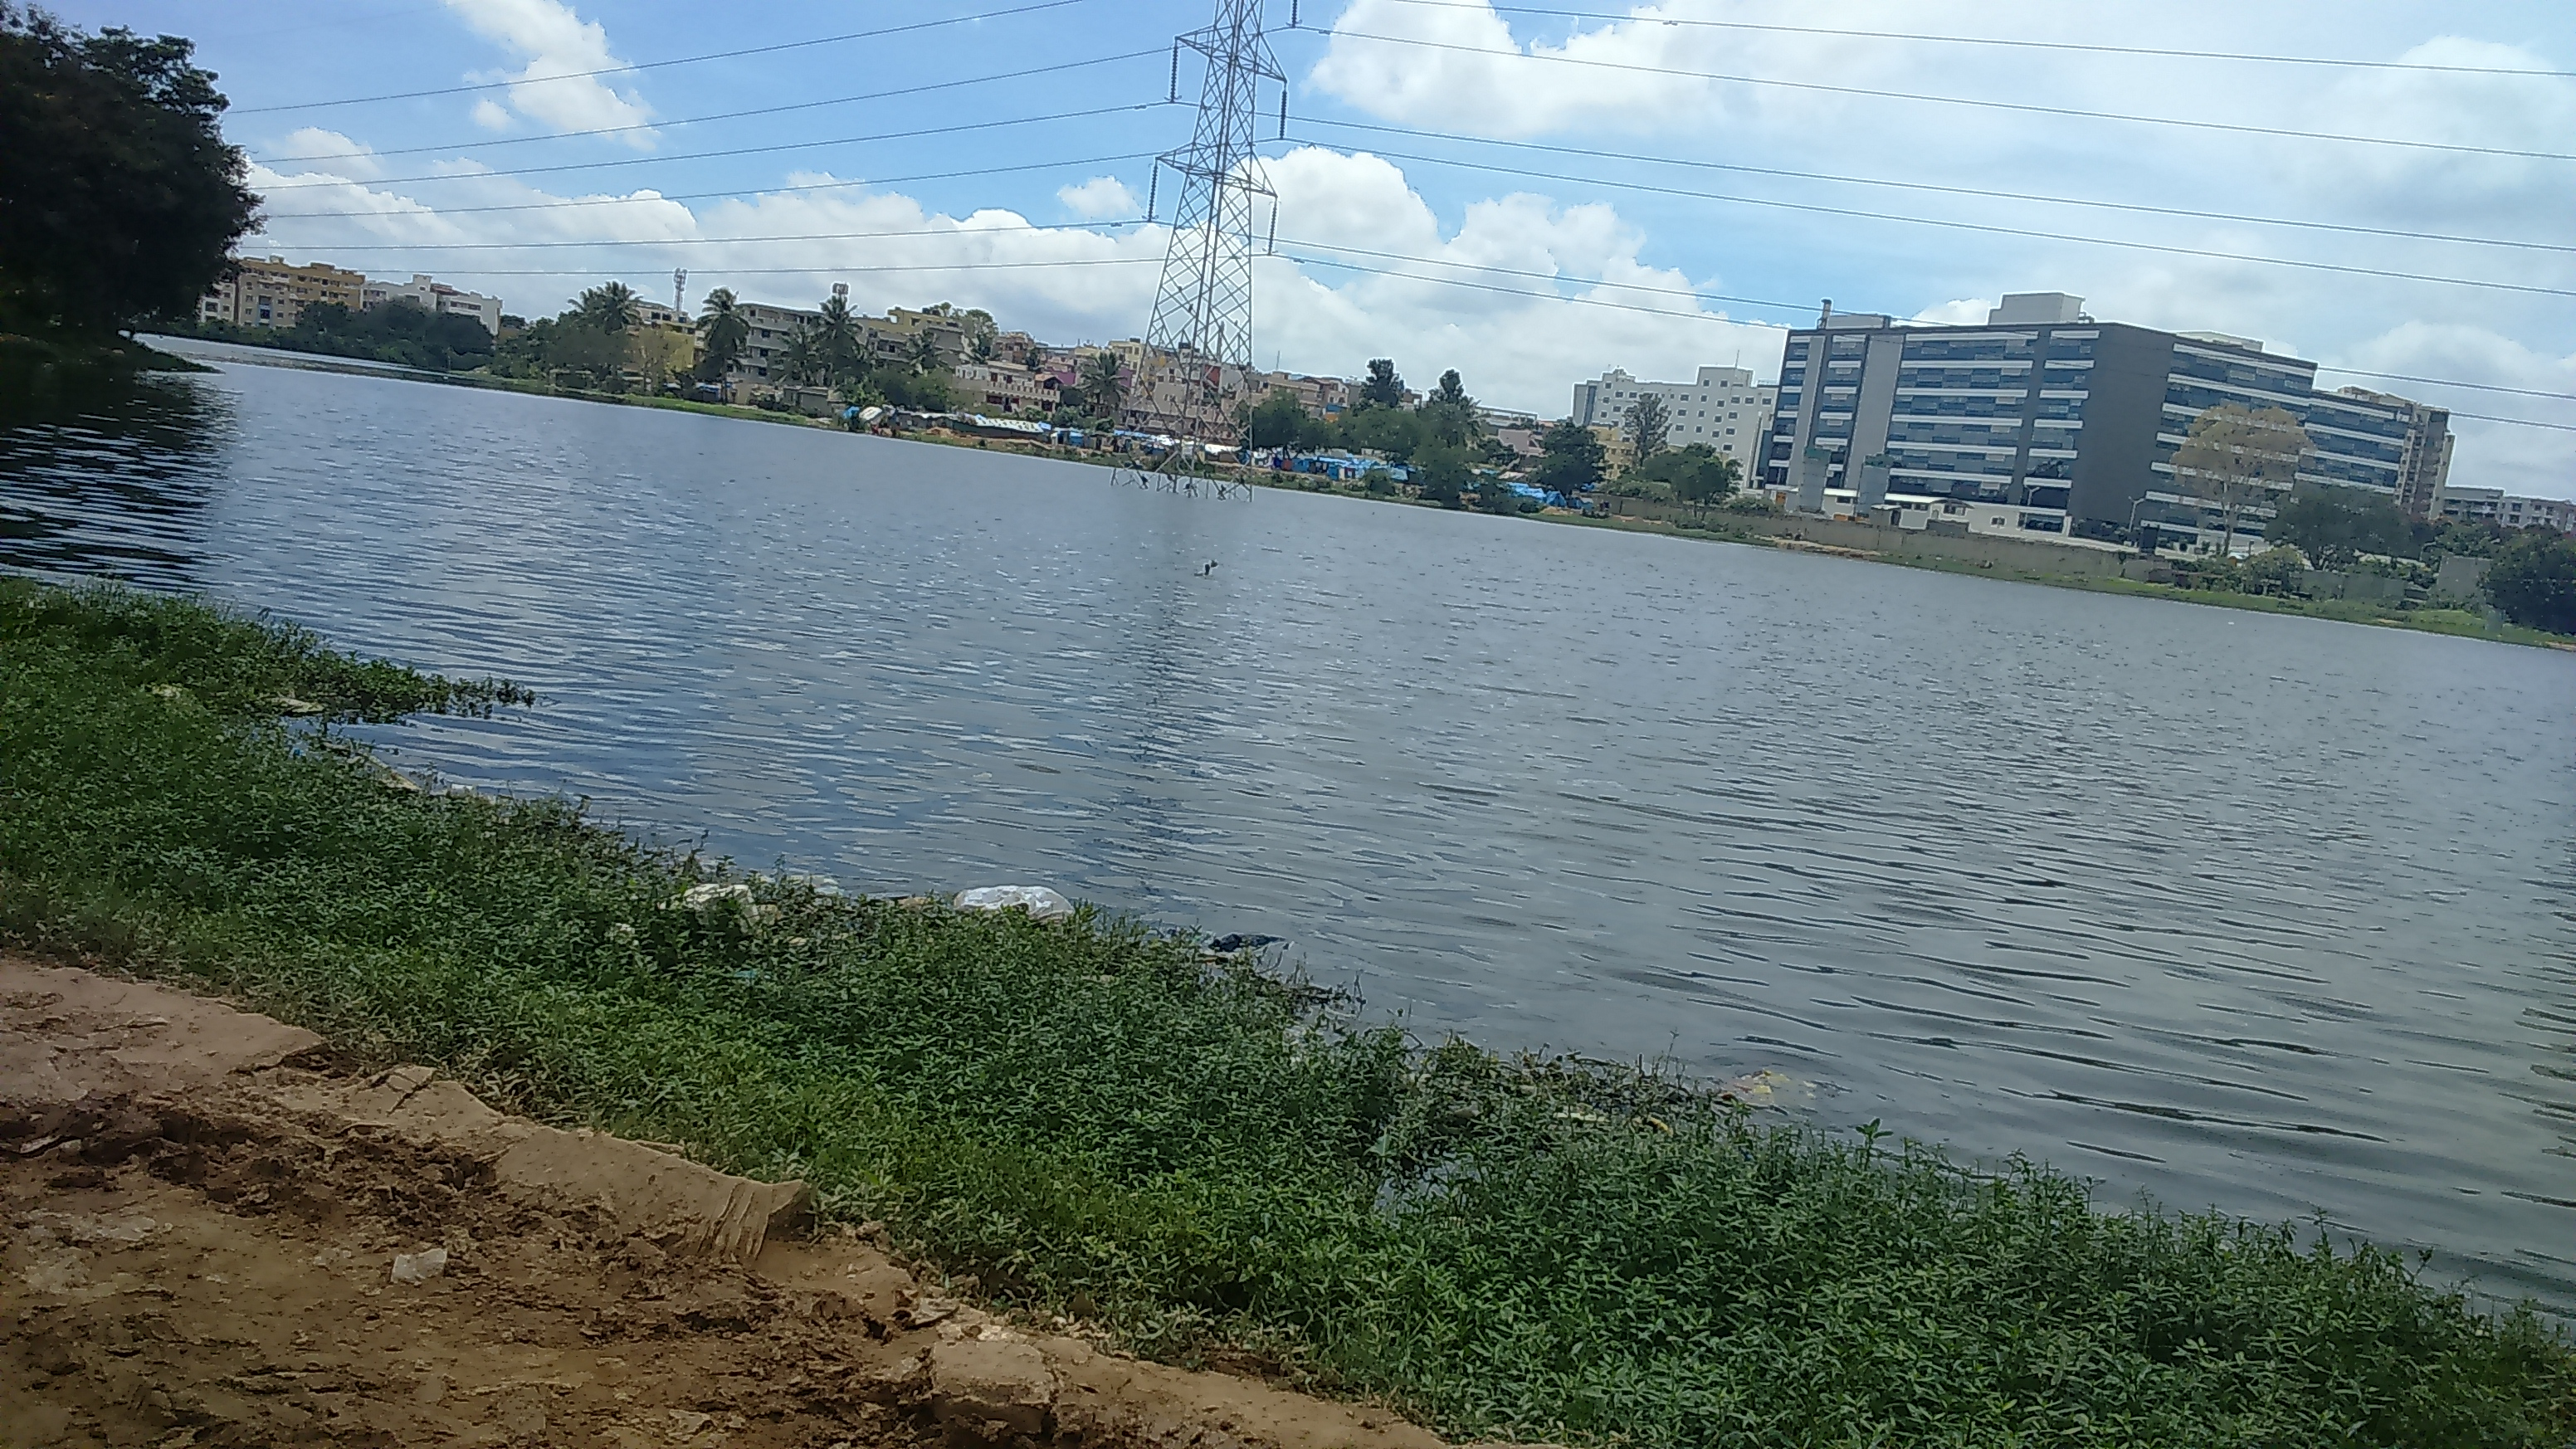 GE helps give Bengaluru's clogged lake new lease of life